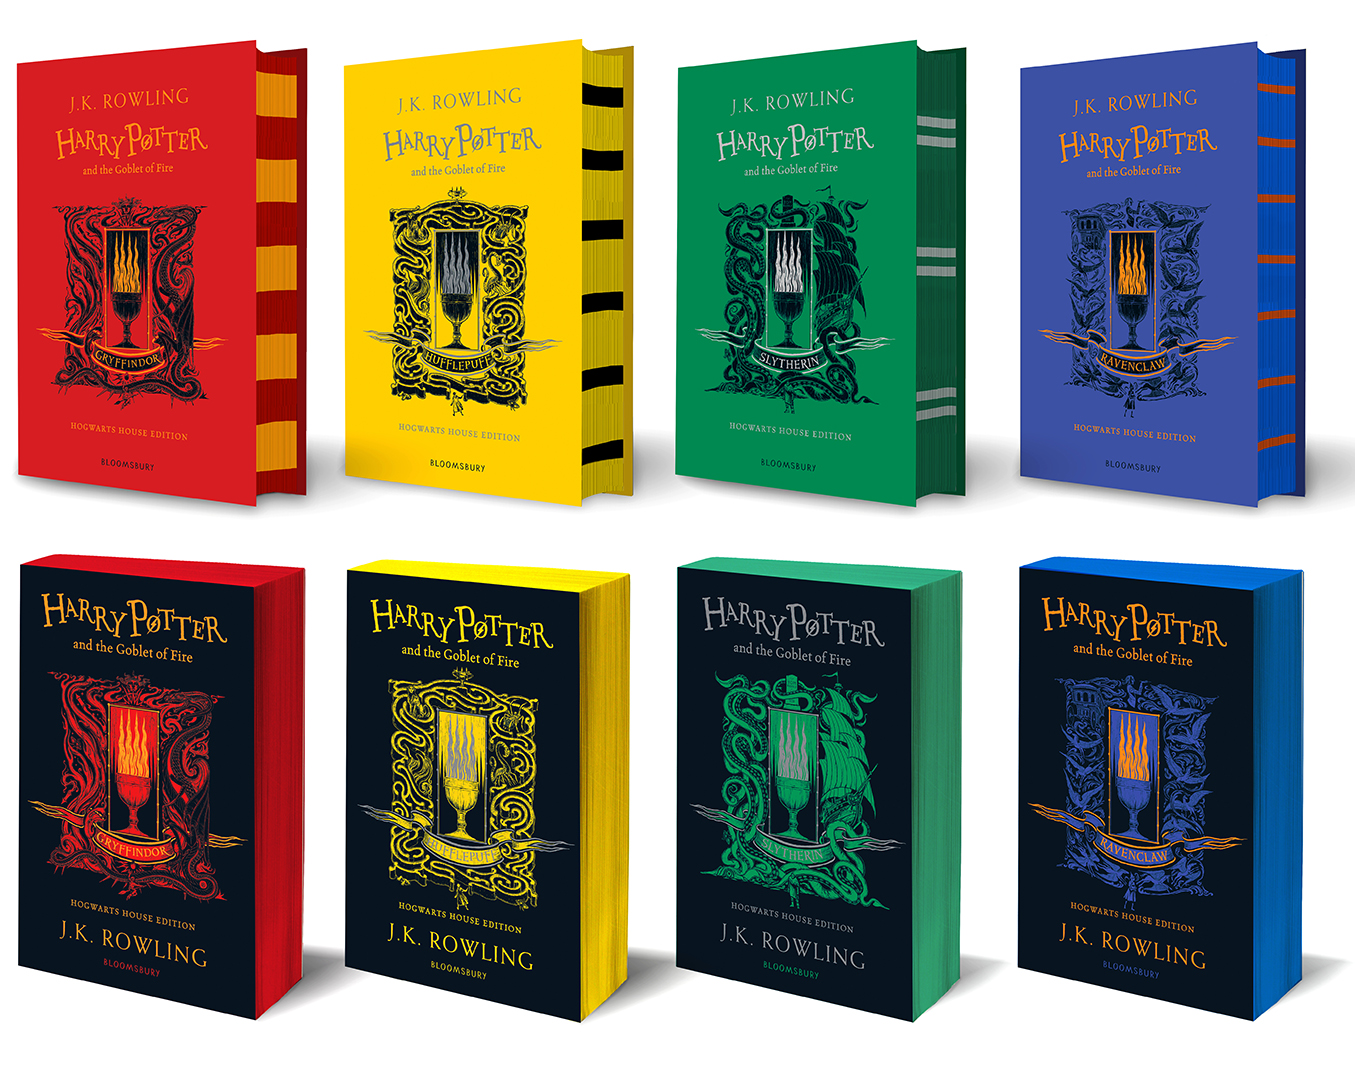 Goblet of Fire new editions